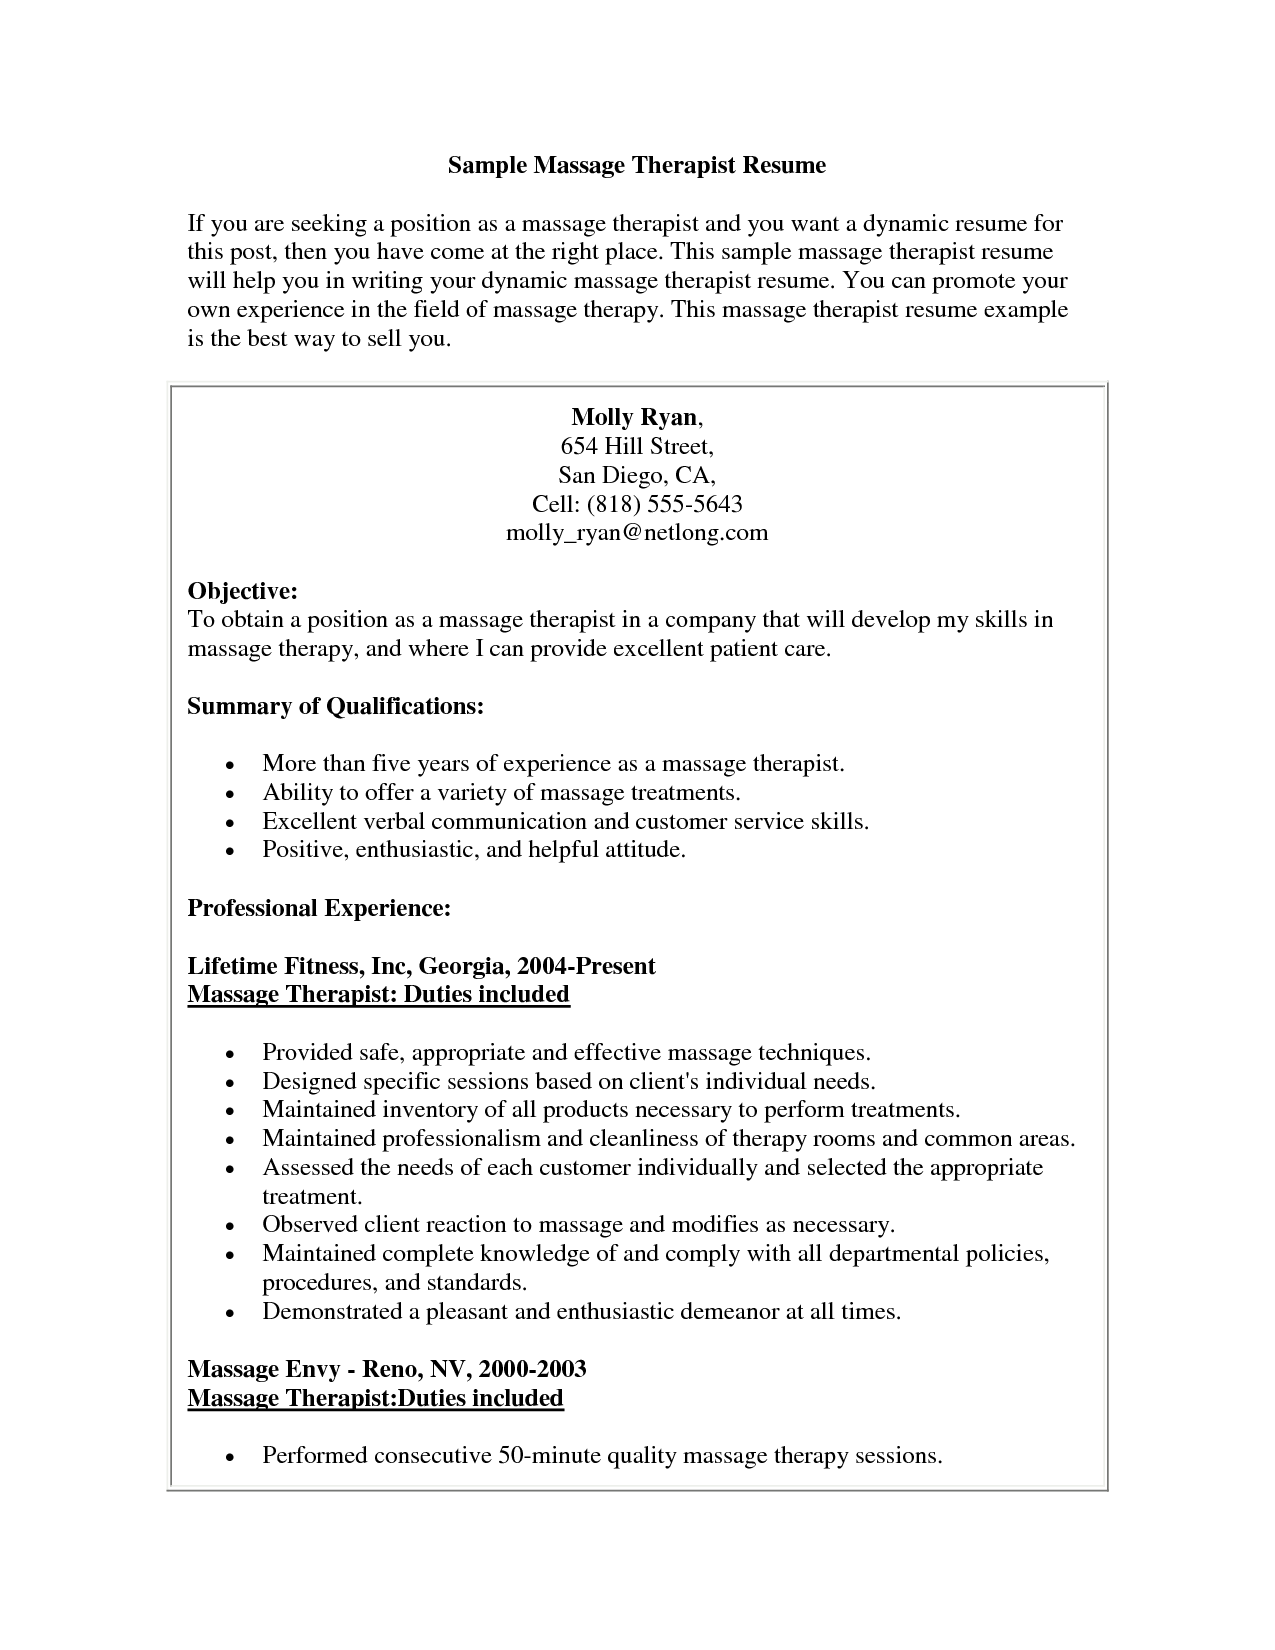 Massage Therapist Resume Sample Objective Skills Job